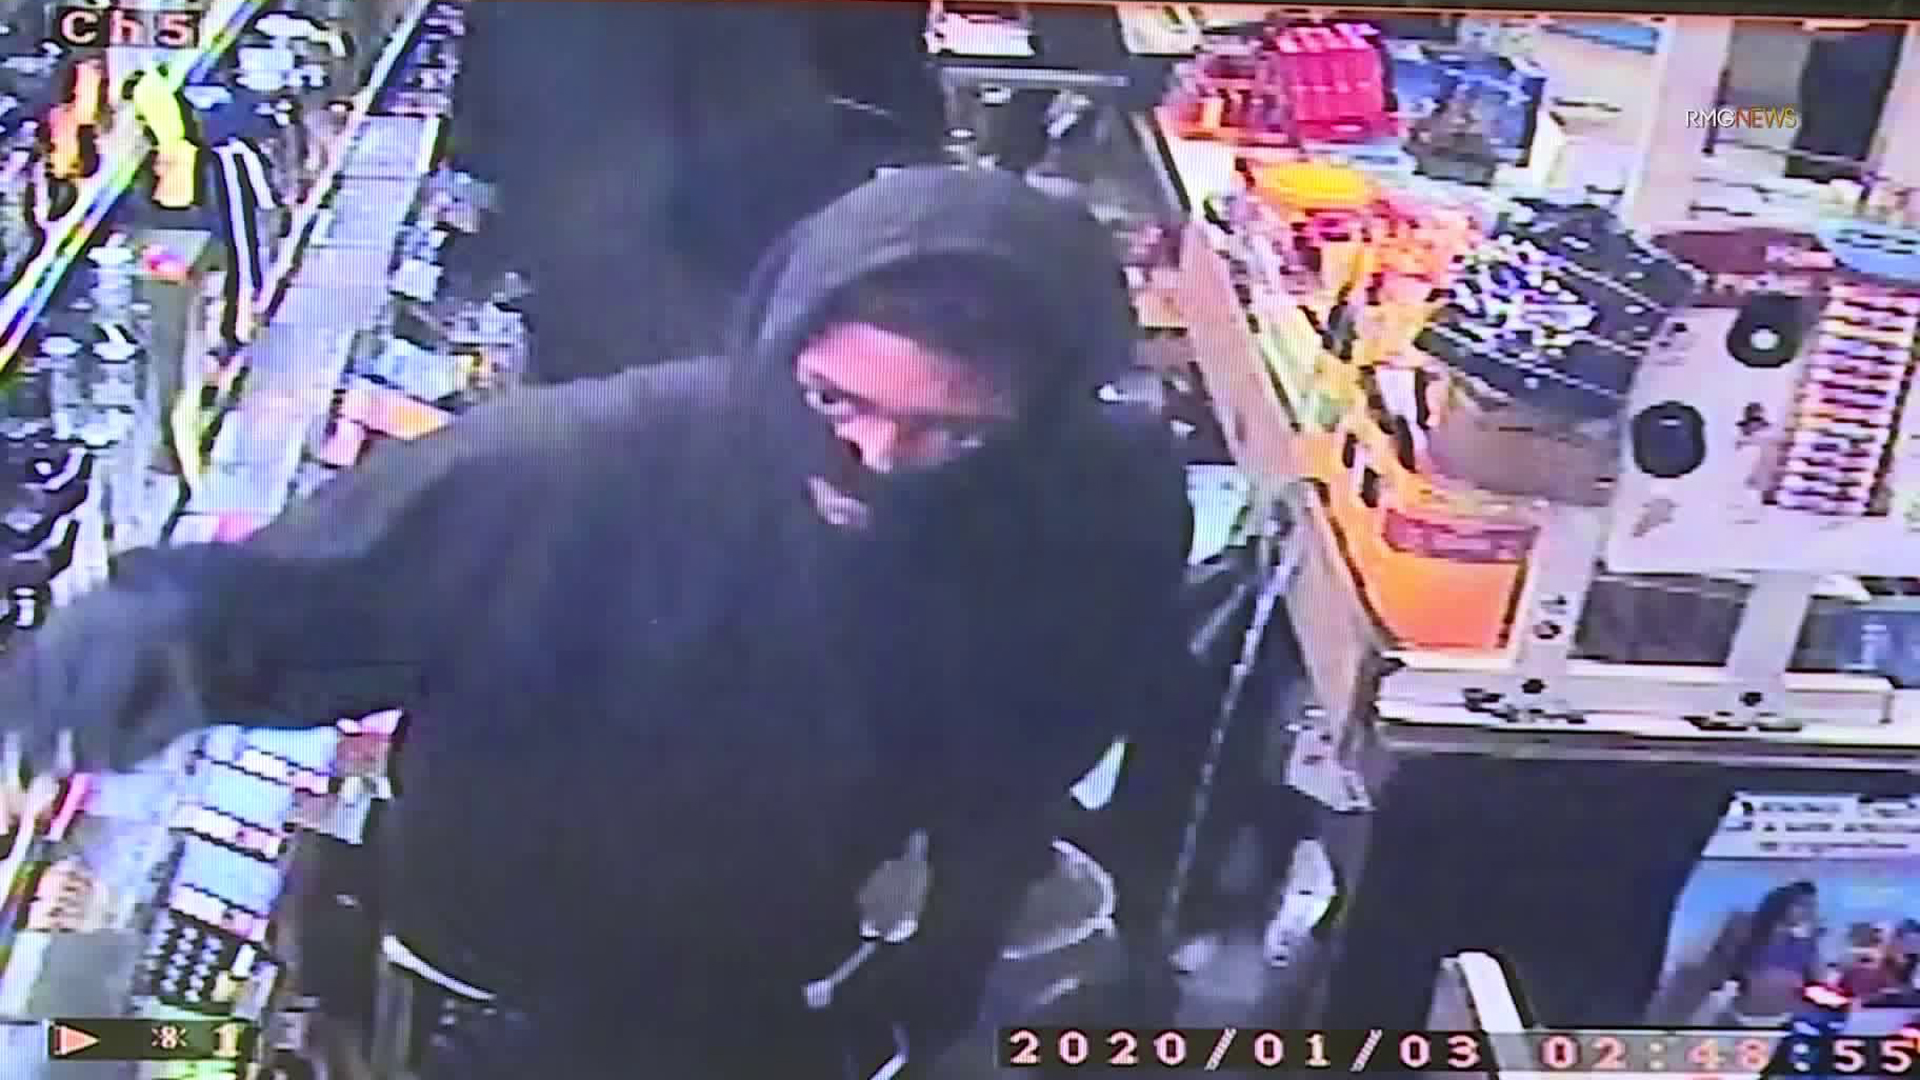 An armed robbery suspect is seen in a surveillance image provided by Lucky 7 Liquor in Culver City.